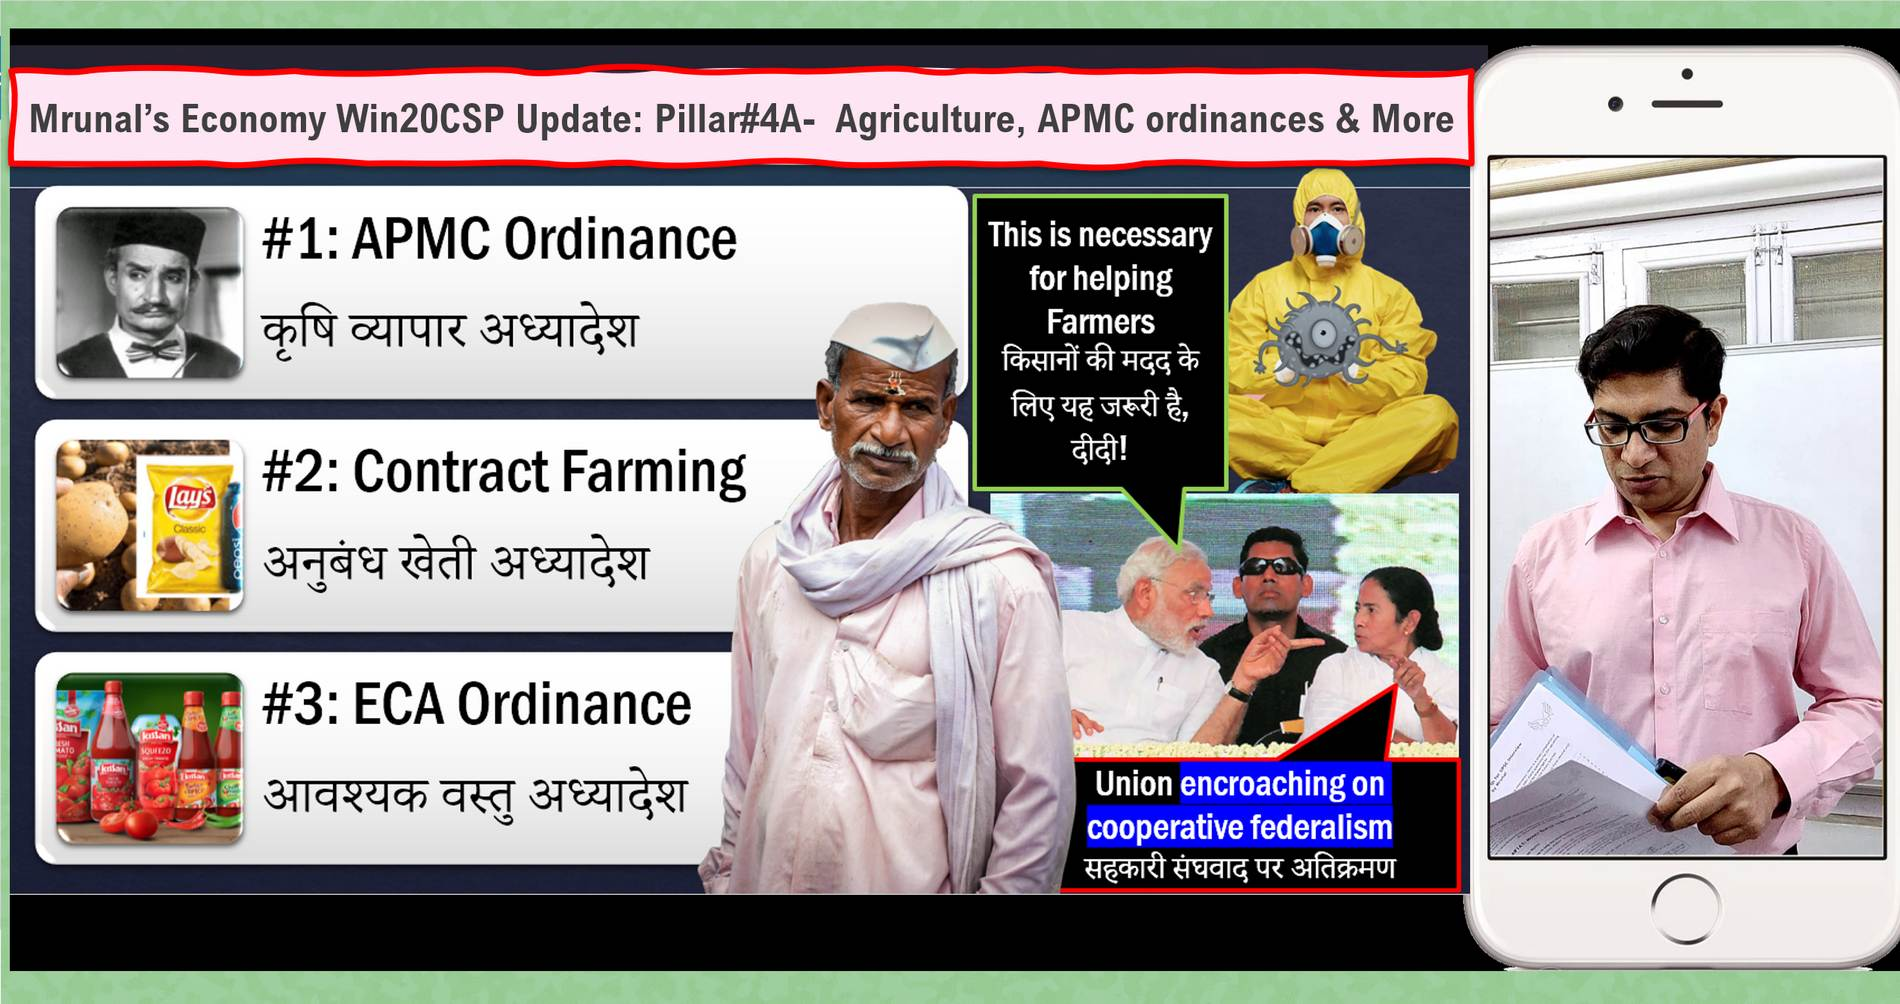 [Win20CSP] Mrunal's Free Economy Update Lecture#9: APMC Ordinance, Contract Farming Ordinance, Agriculture Schemes & More in Pillar4A